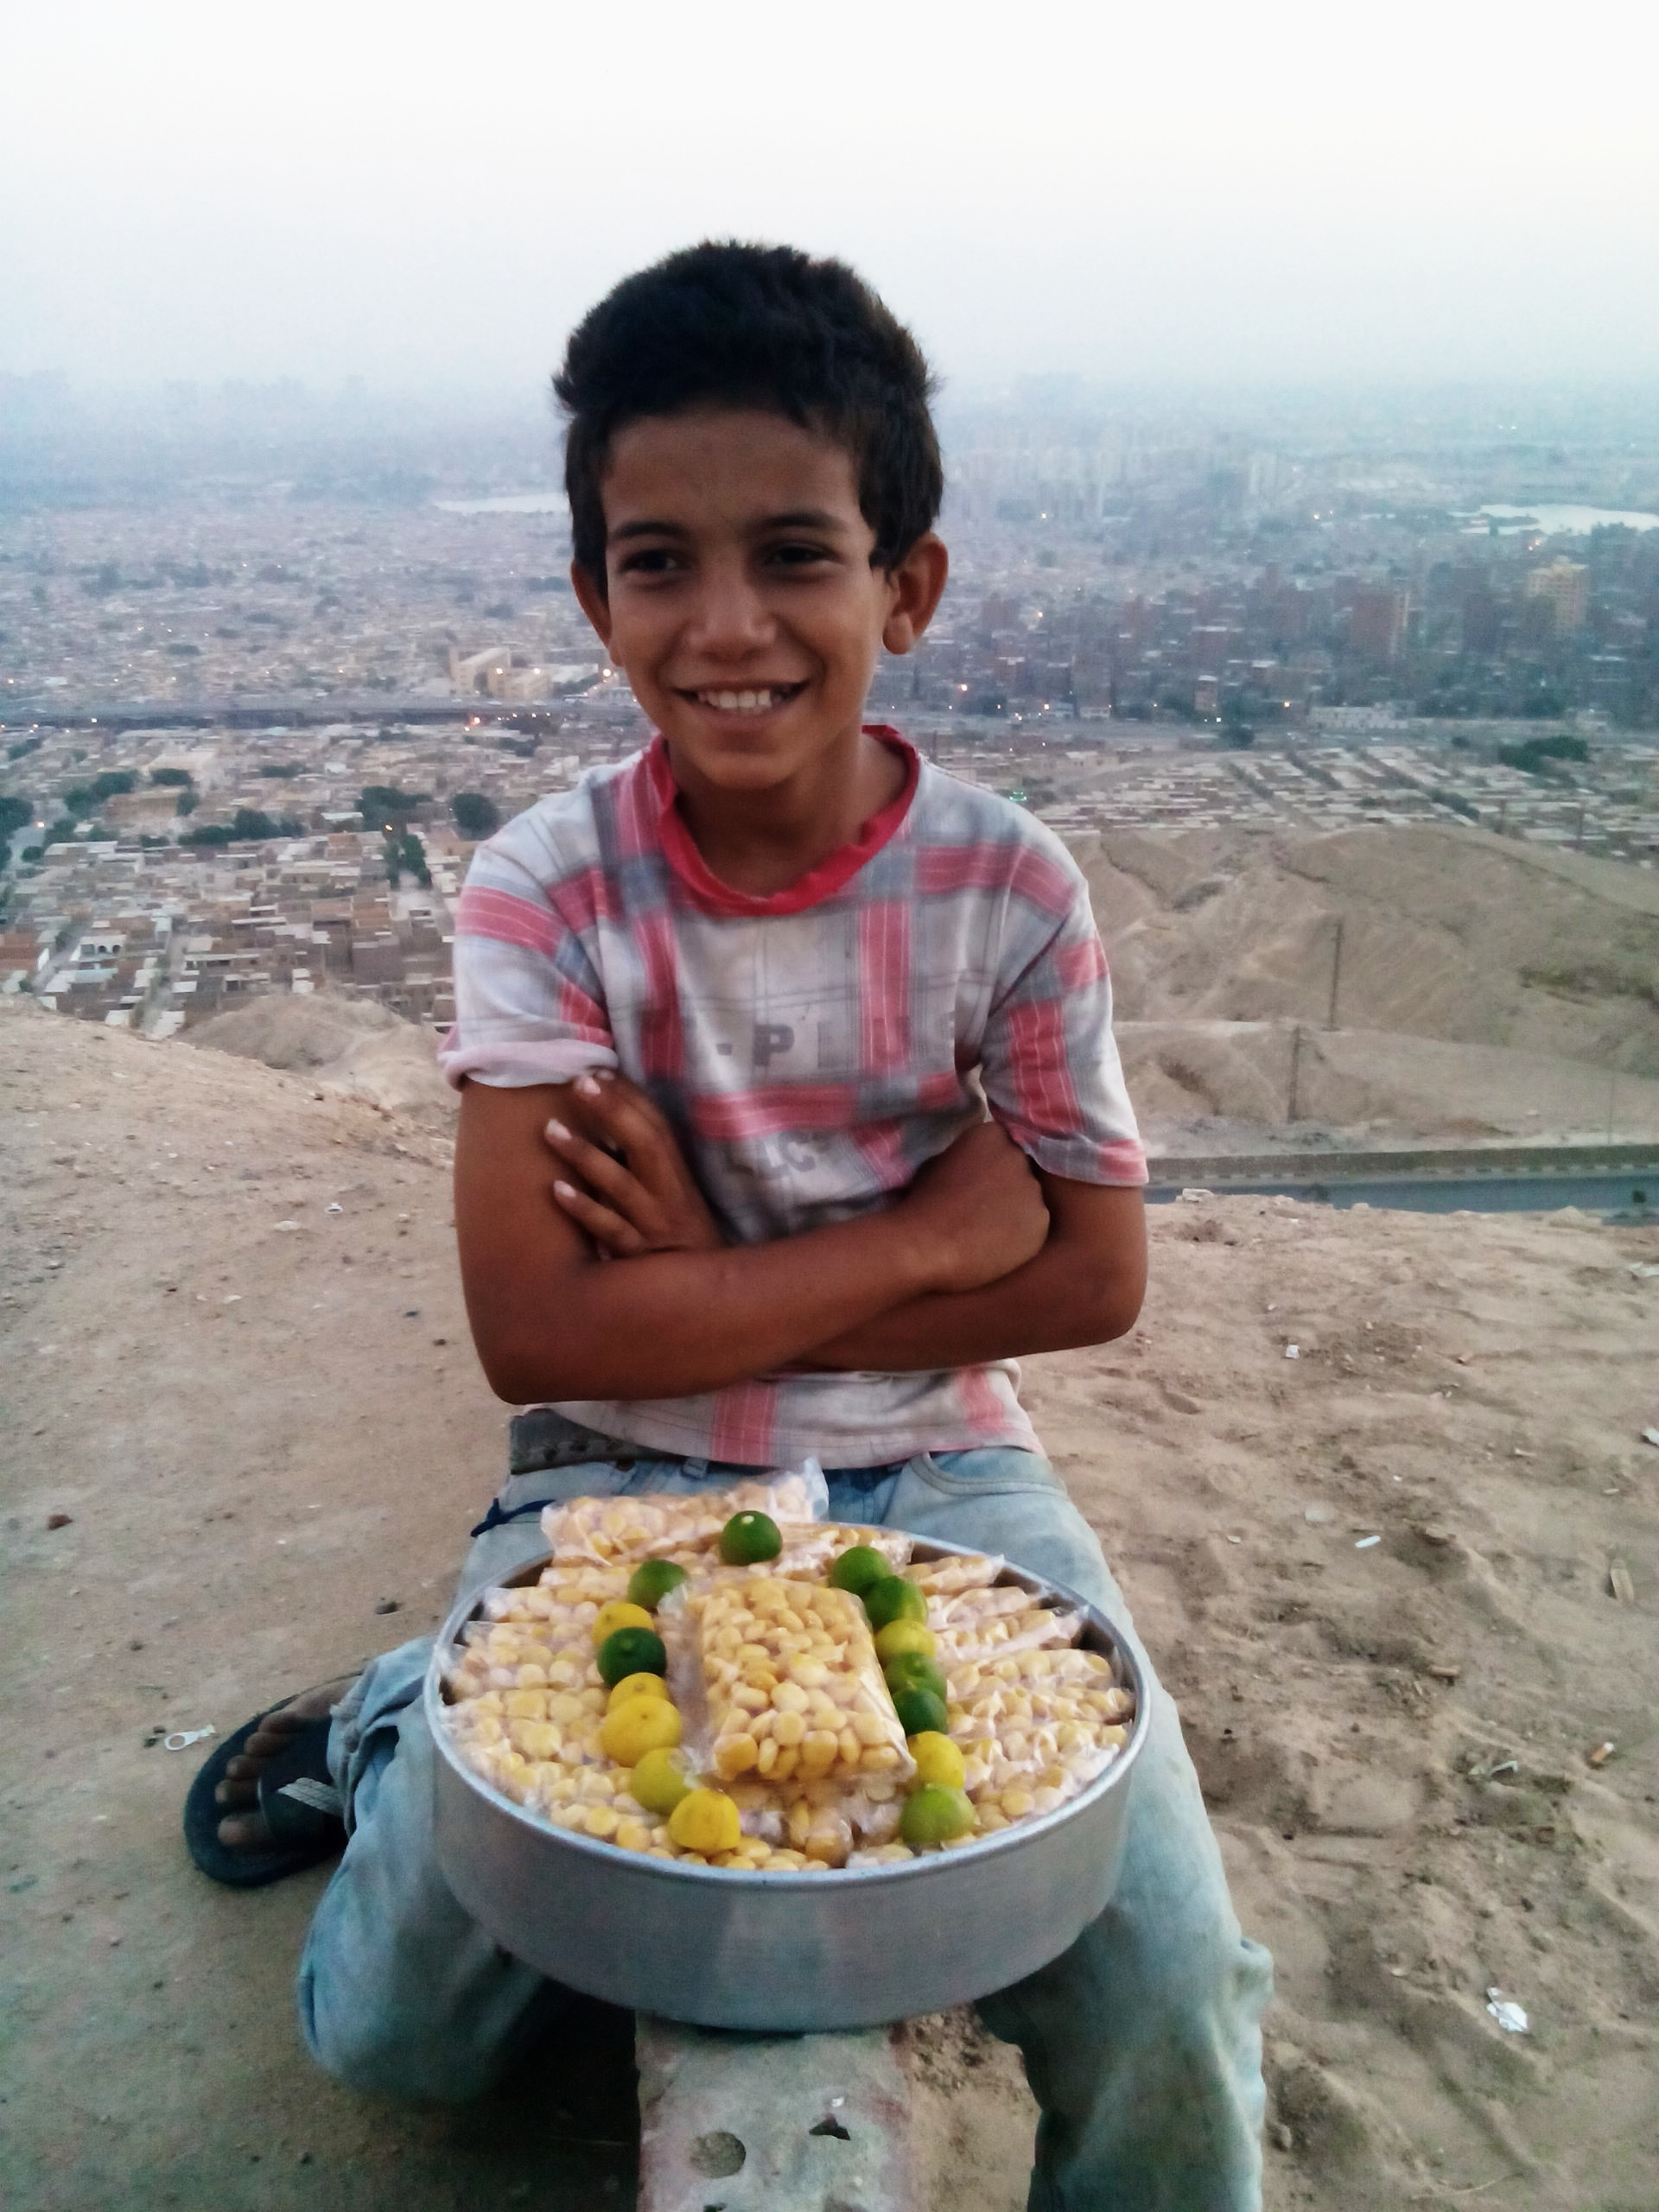 """Gamal, 11, sells lupine grain in a photo posted on the Facebook page """"Humans of Cairo"""" (Photo by Salma Hegab)"""